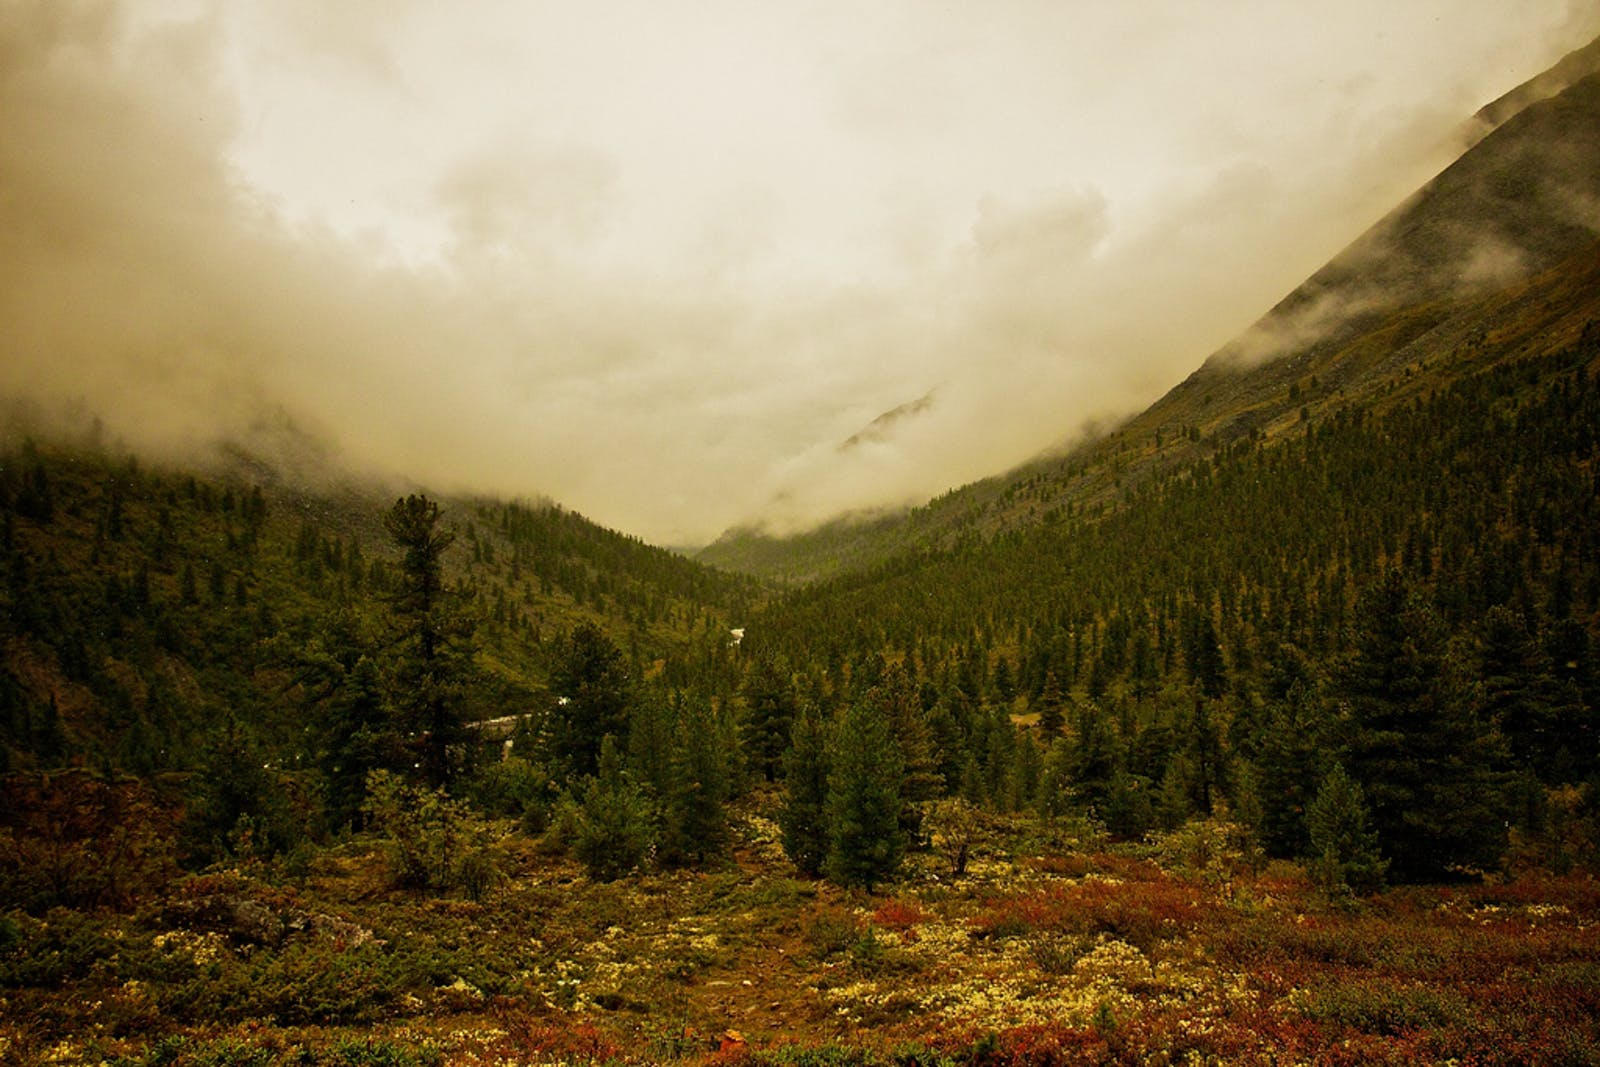 Sayan Montane Conifer Forests